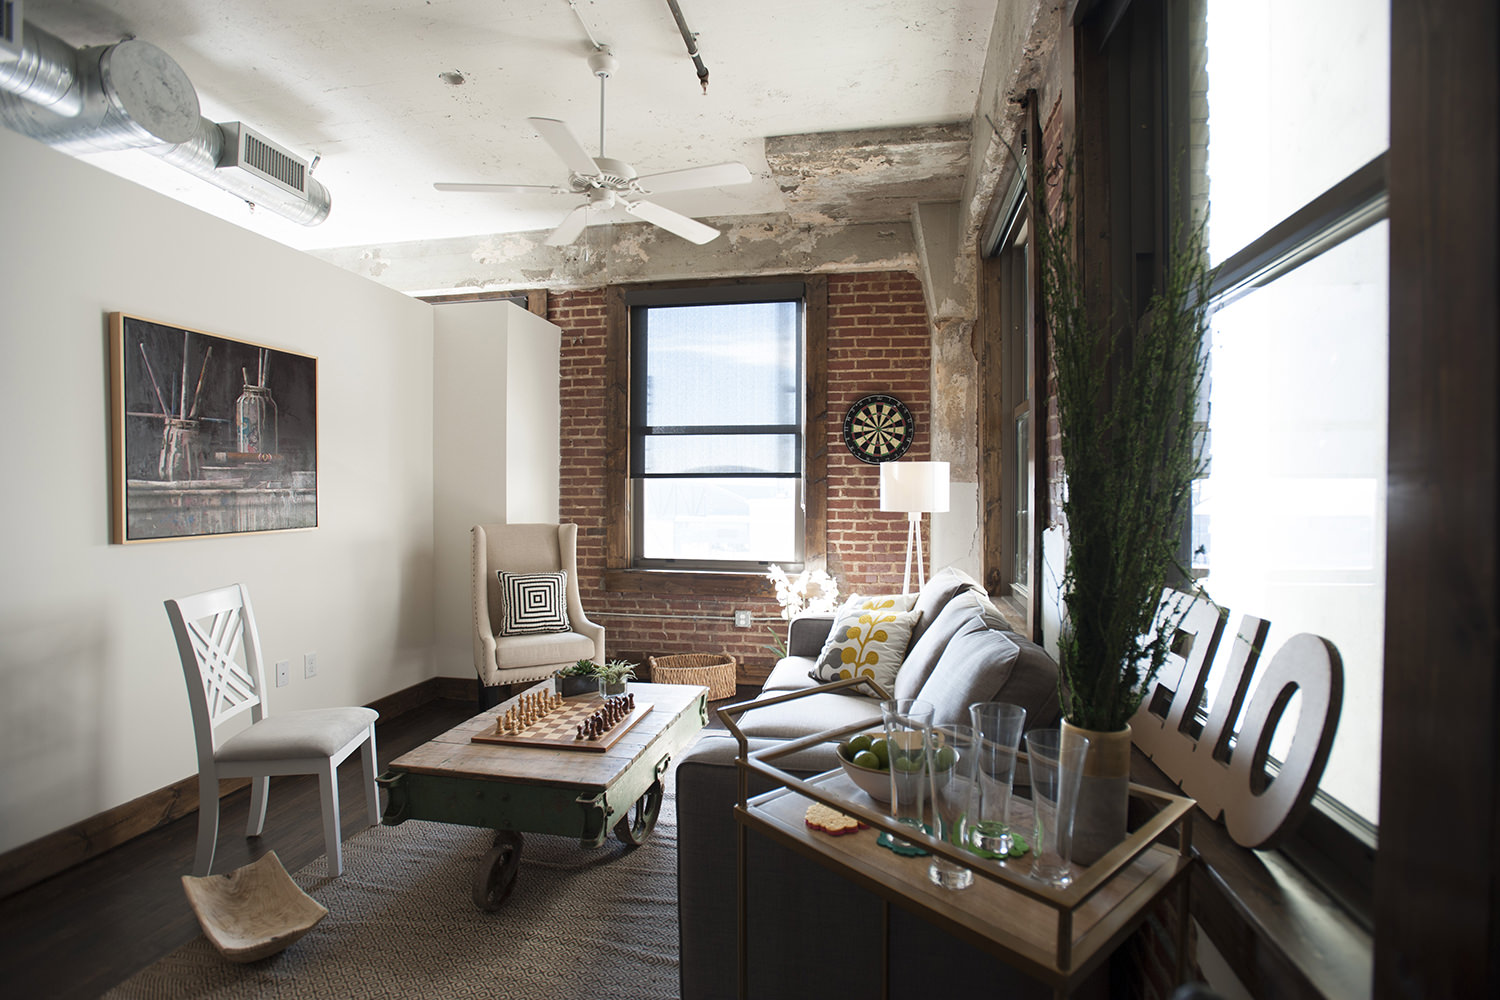 Pressbox Lofts Downtown Memphis, Tennessee - Historic Redevelopment Renovation - 5.jpg